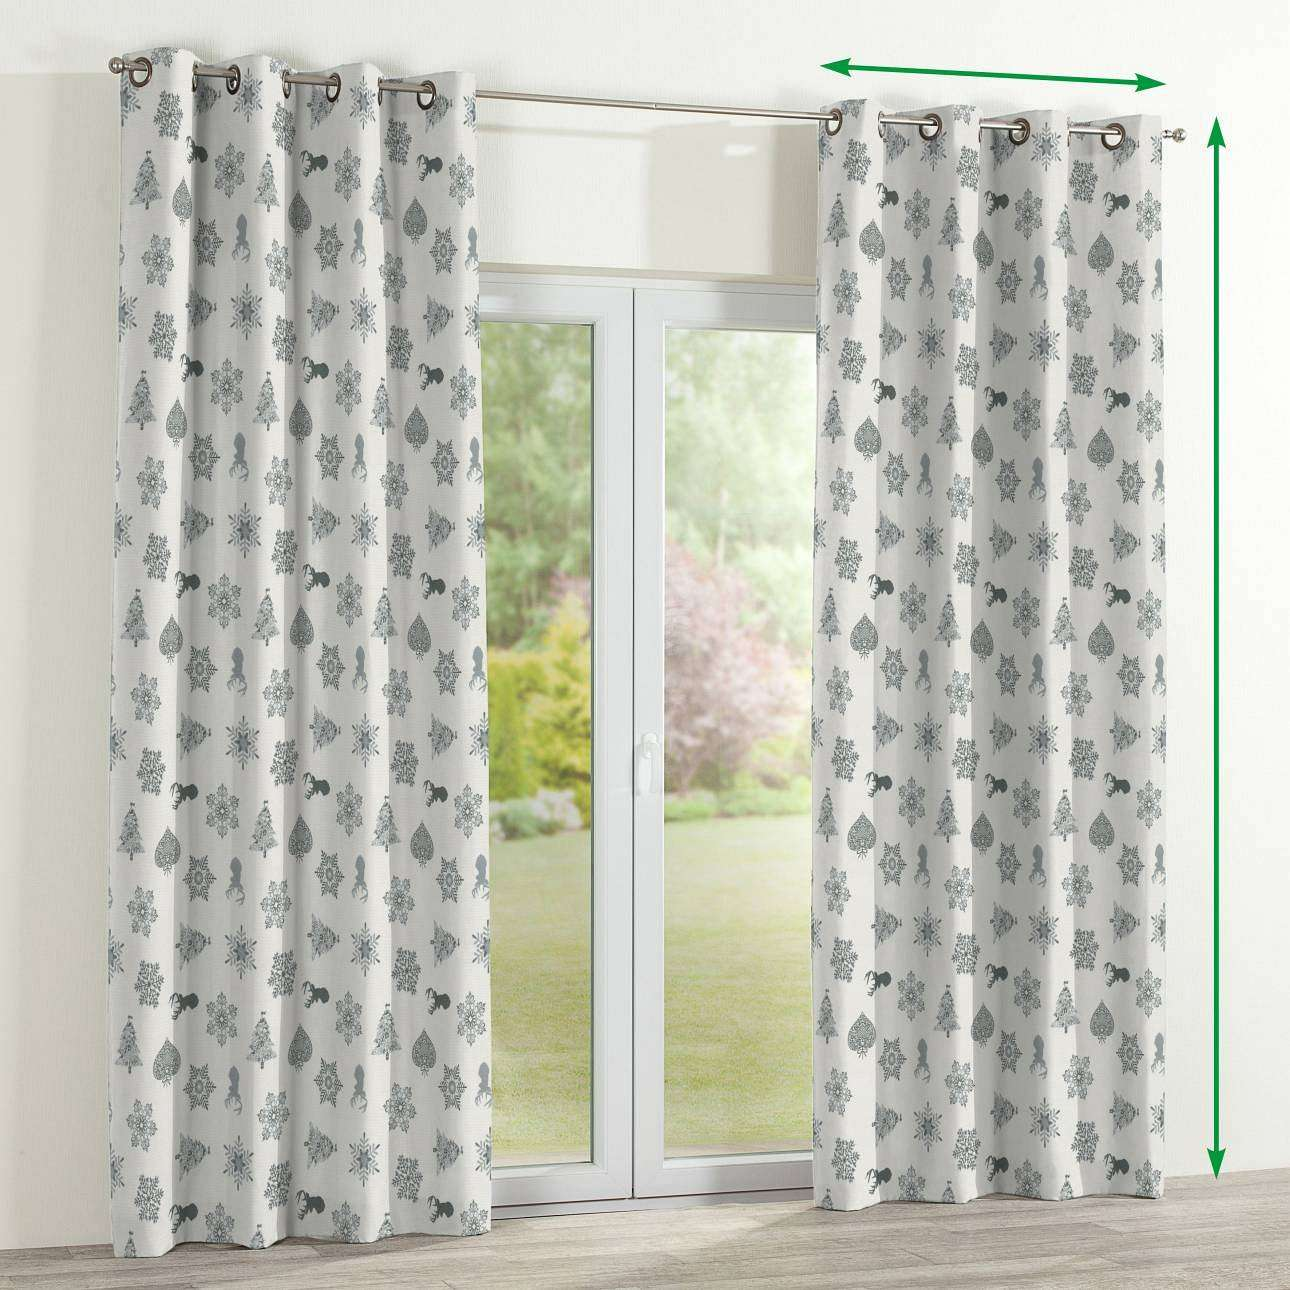 Eyelet curtains in collection Christmas, fabric: 630-24